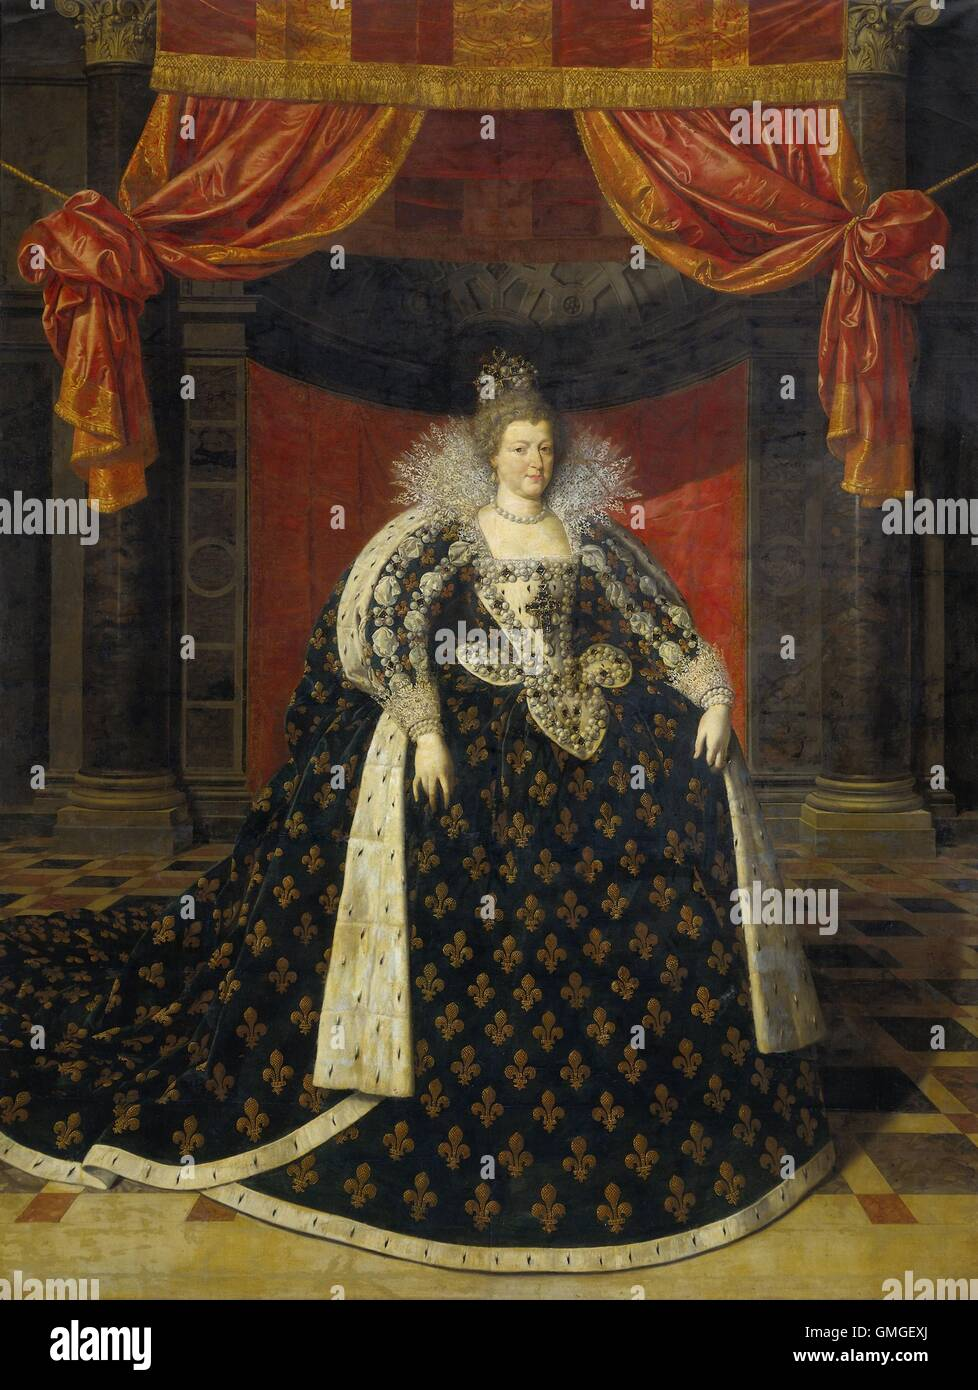 Marie de Medicis, Consort of Henry IV, King of France, by Frans Pourbus the Younger, c. 1600-20, Flemish painting, - Stock Image